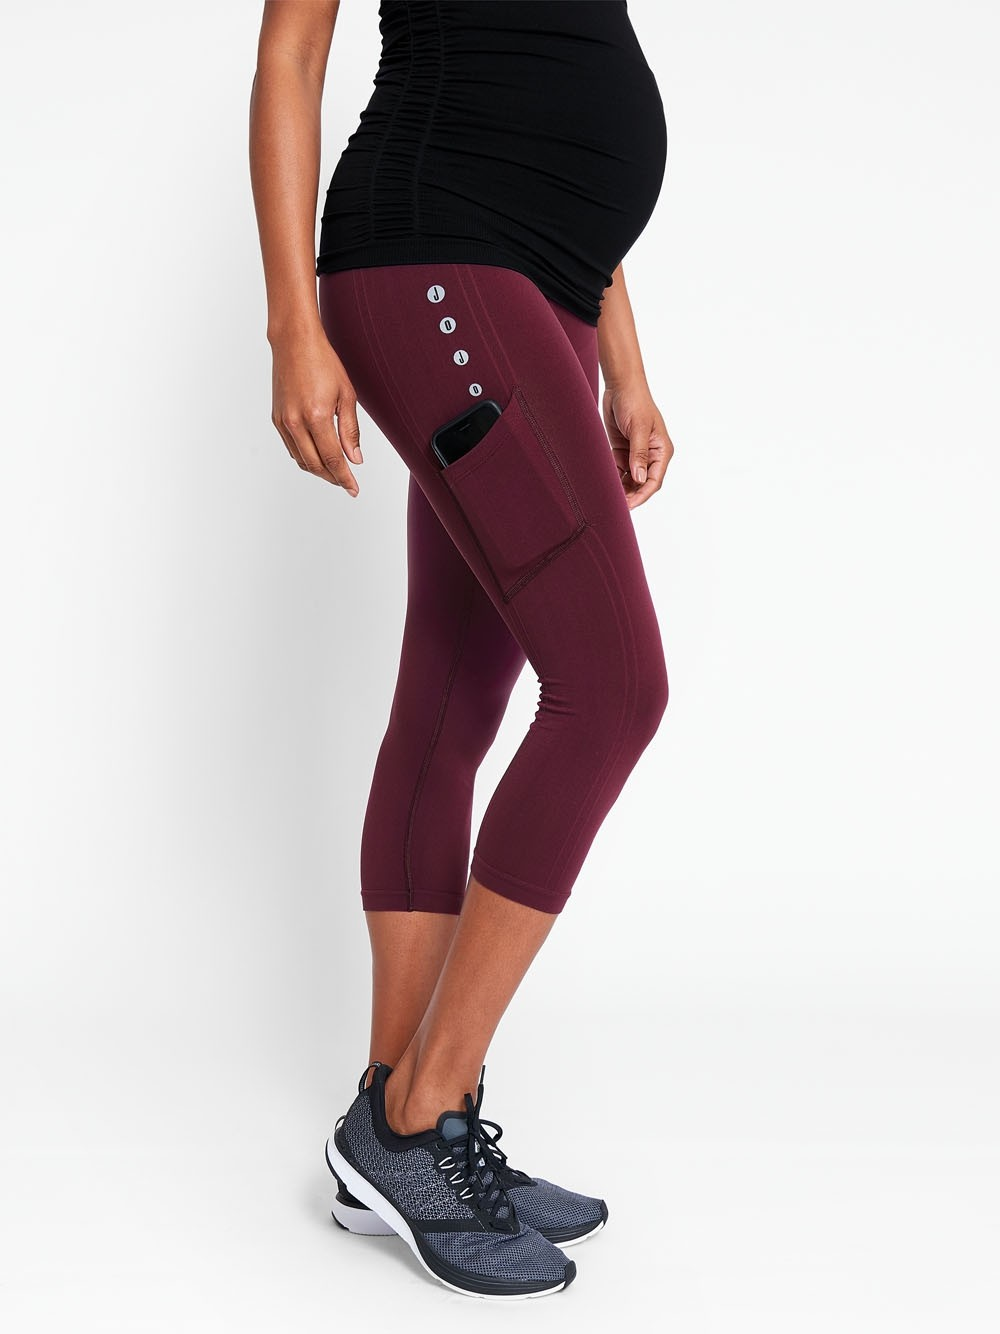 Active Support Cropped Maternity Leggings